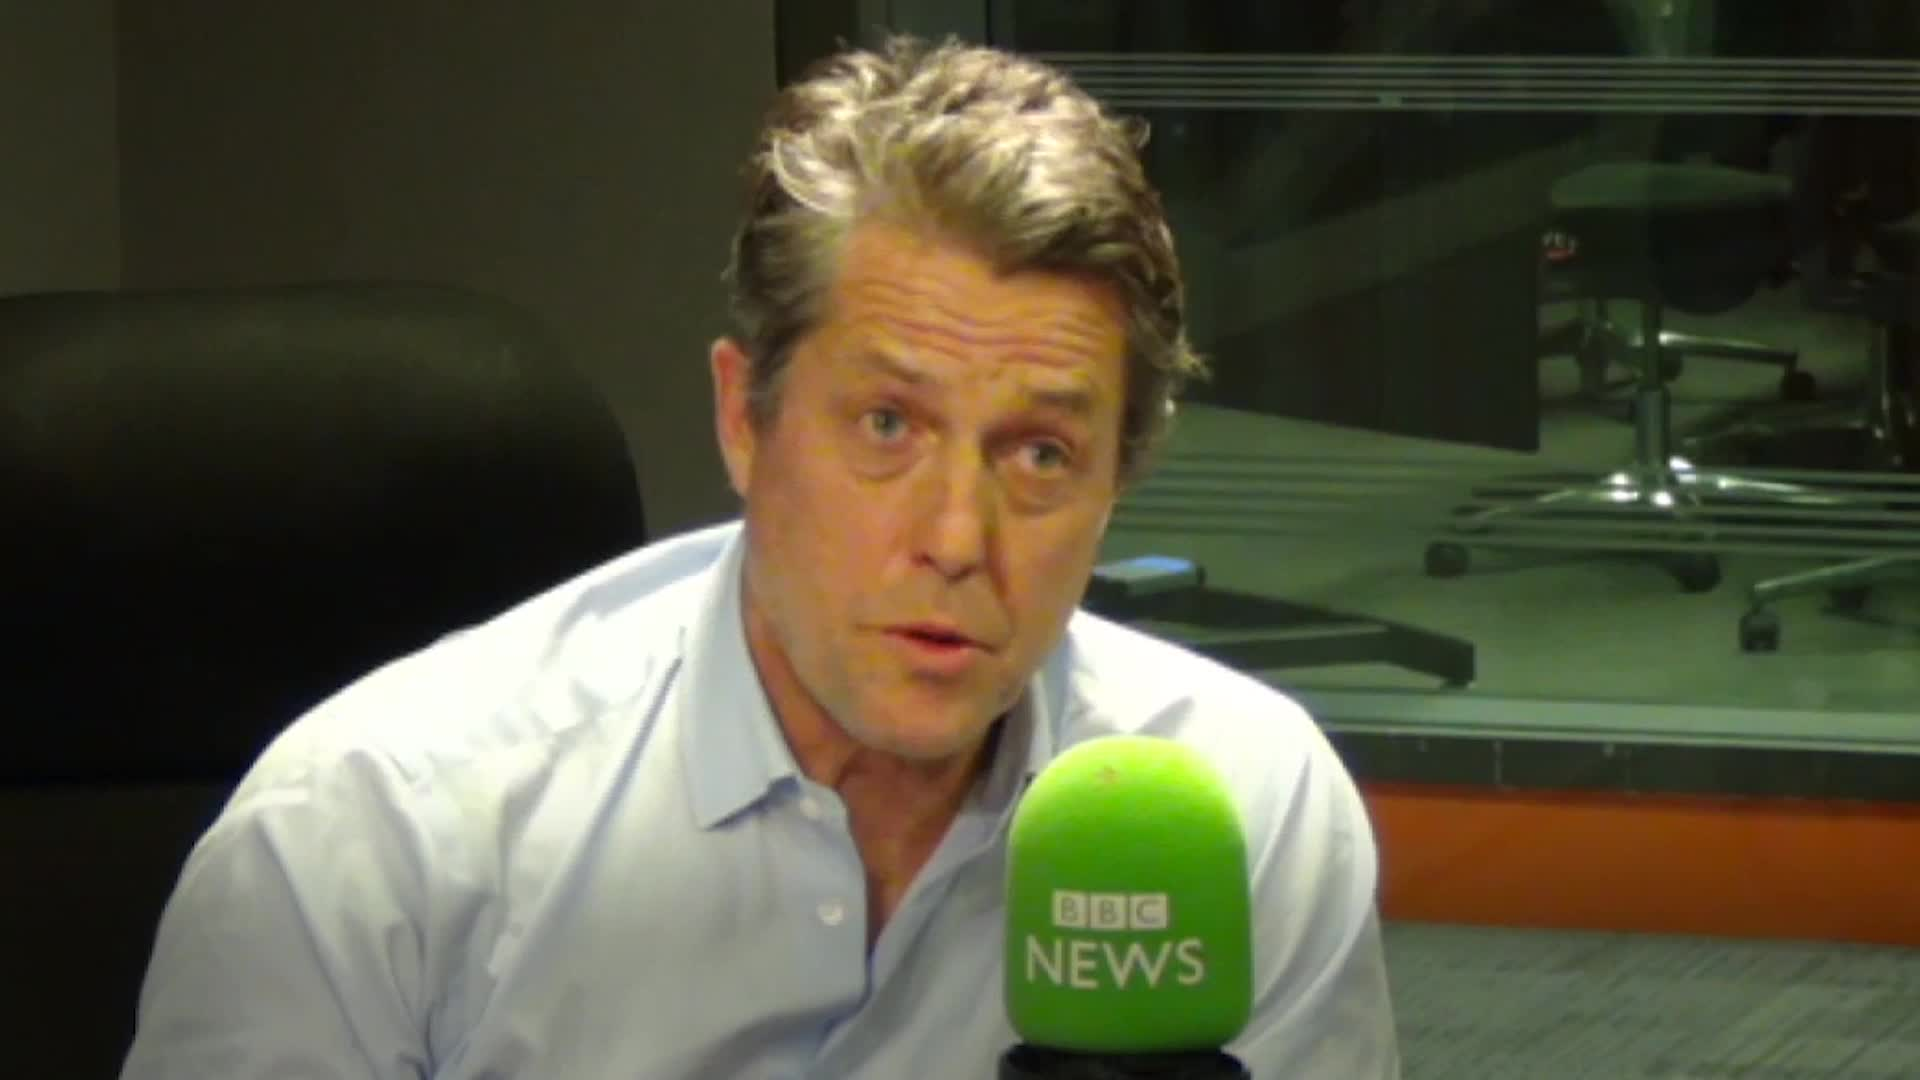 Hugh Grant Gives Withering Response To Boris Johnson's Love Actually-Inspired Campaign Video